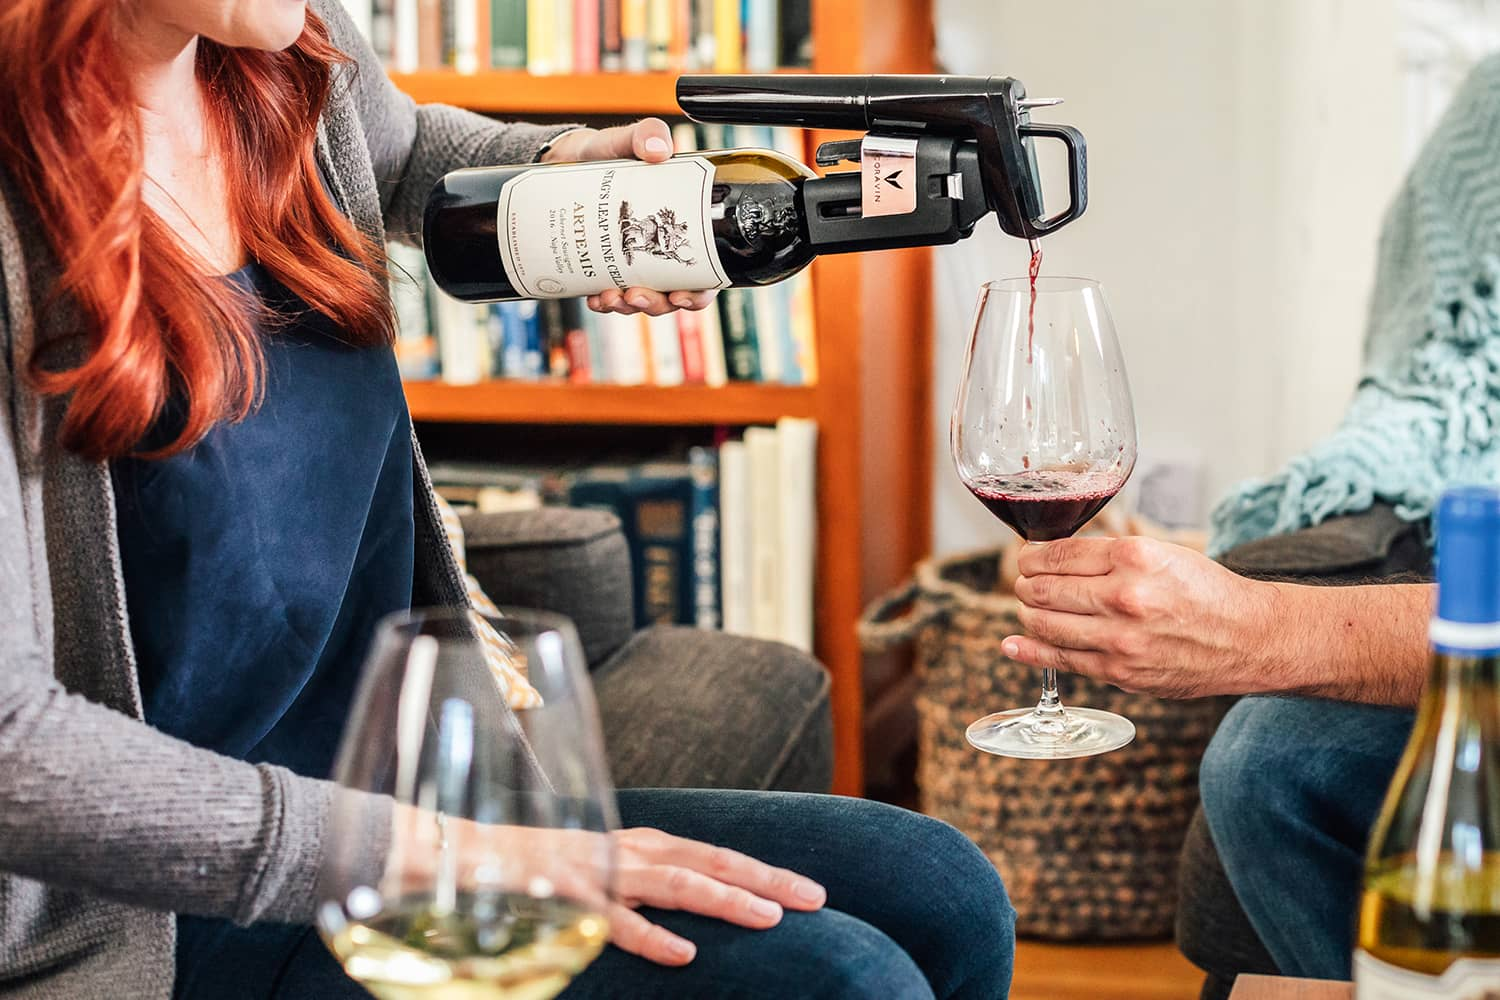 Coravin Wine Access System Model 6